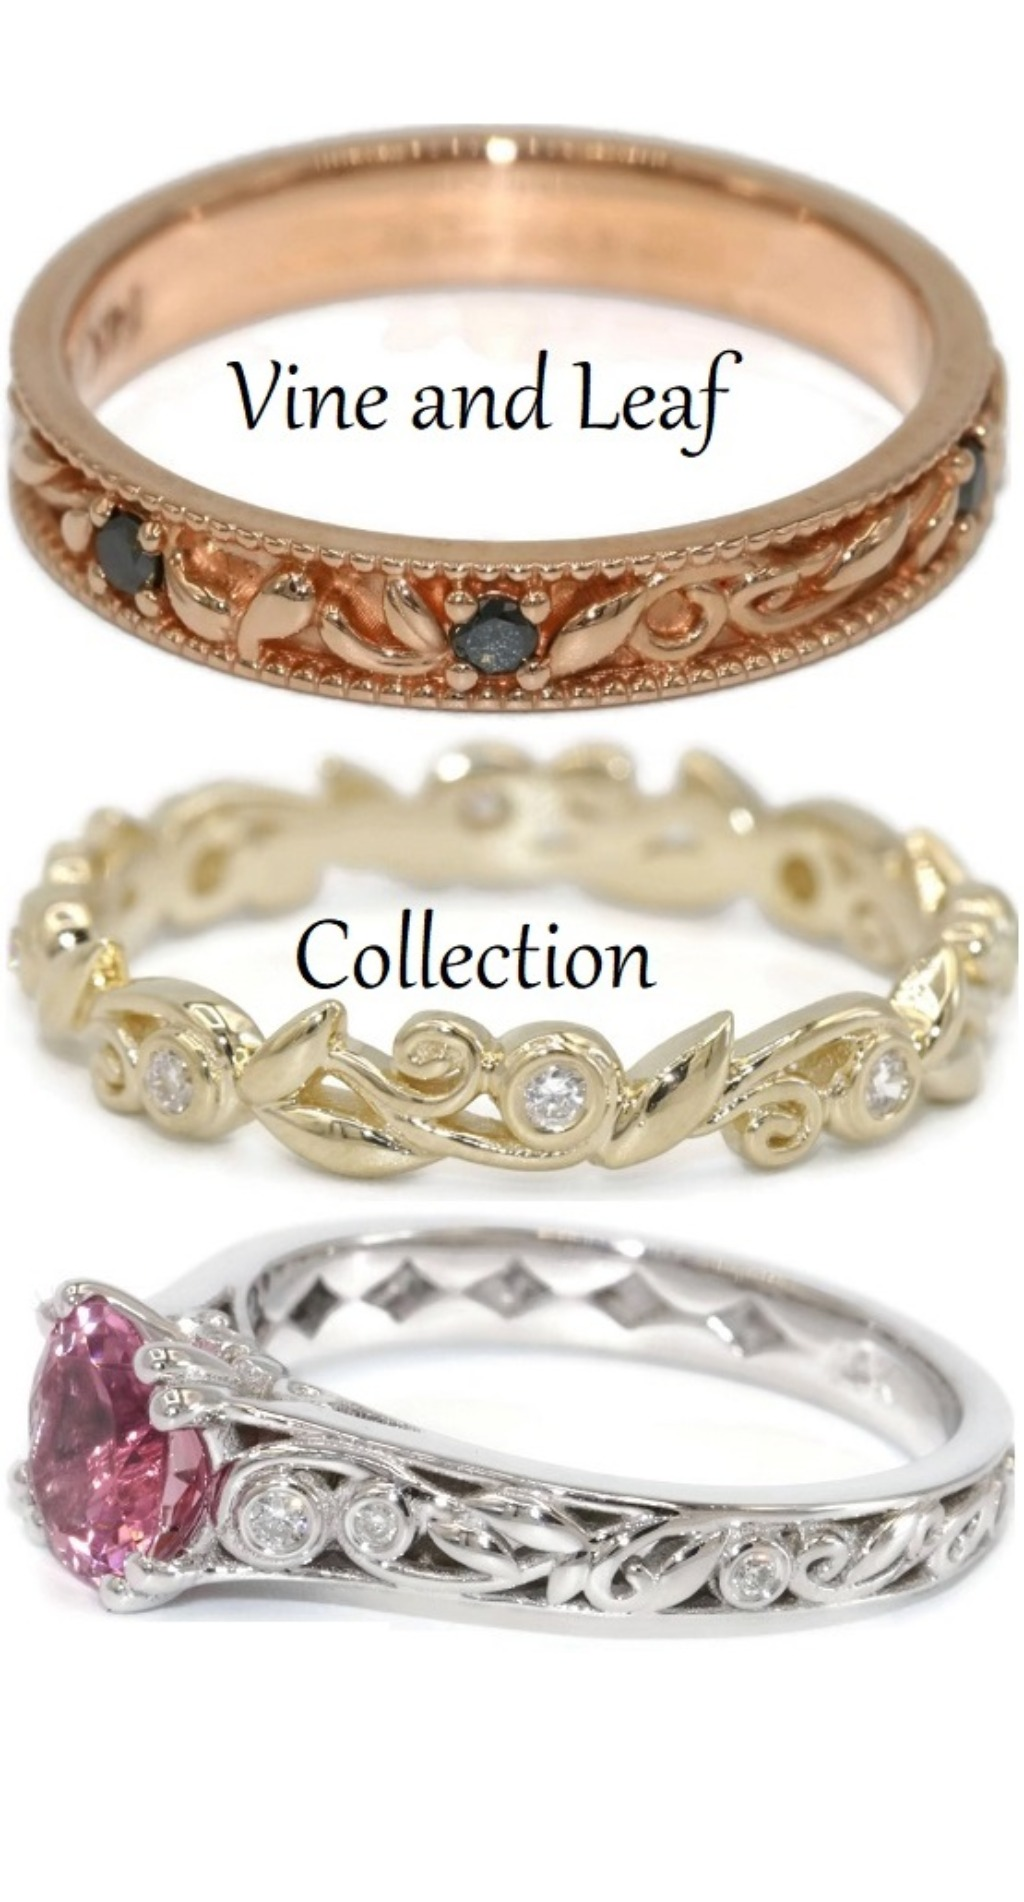 Rustic Love collection is inspired by the true beauty of mother nature.